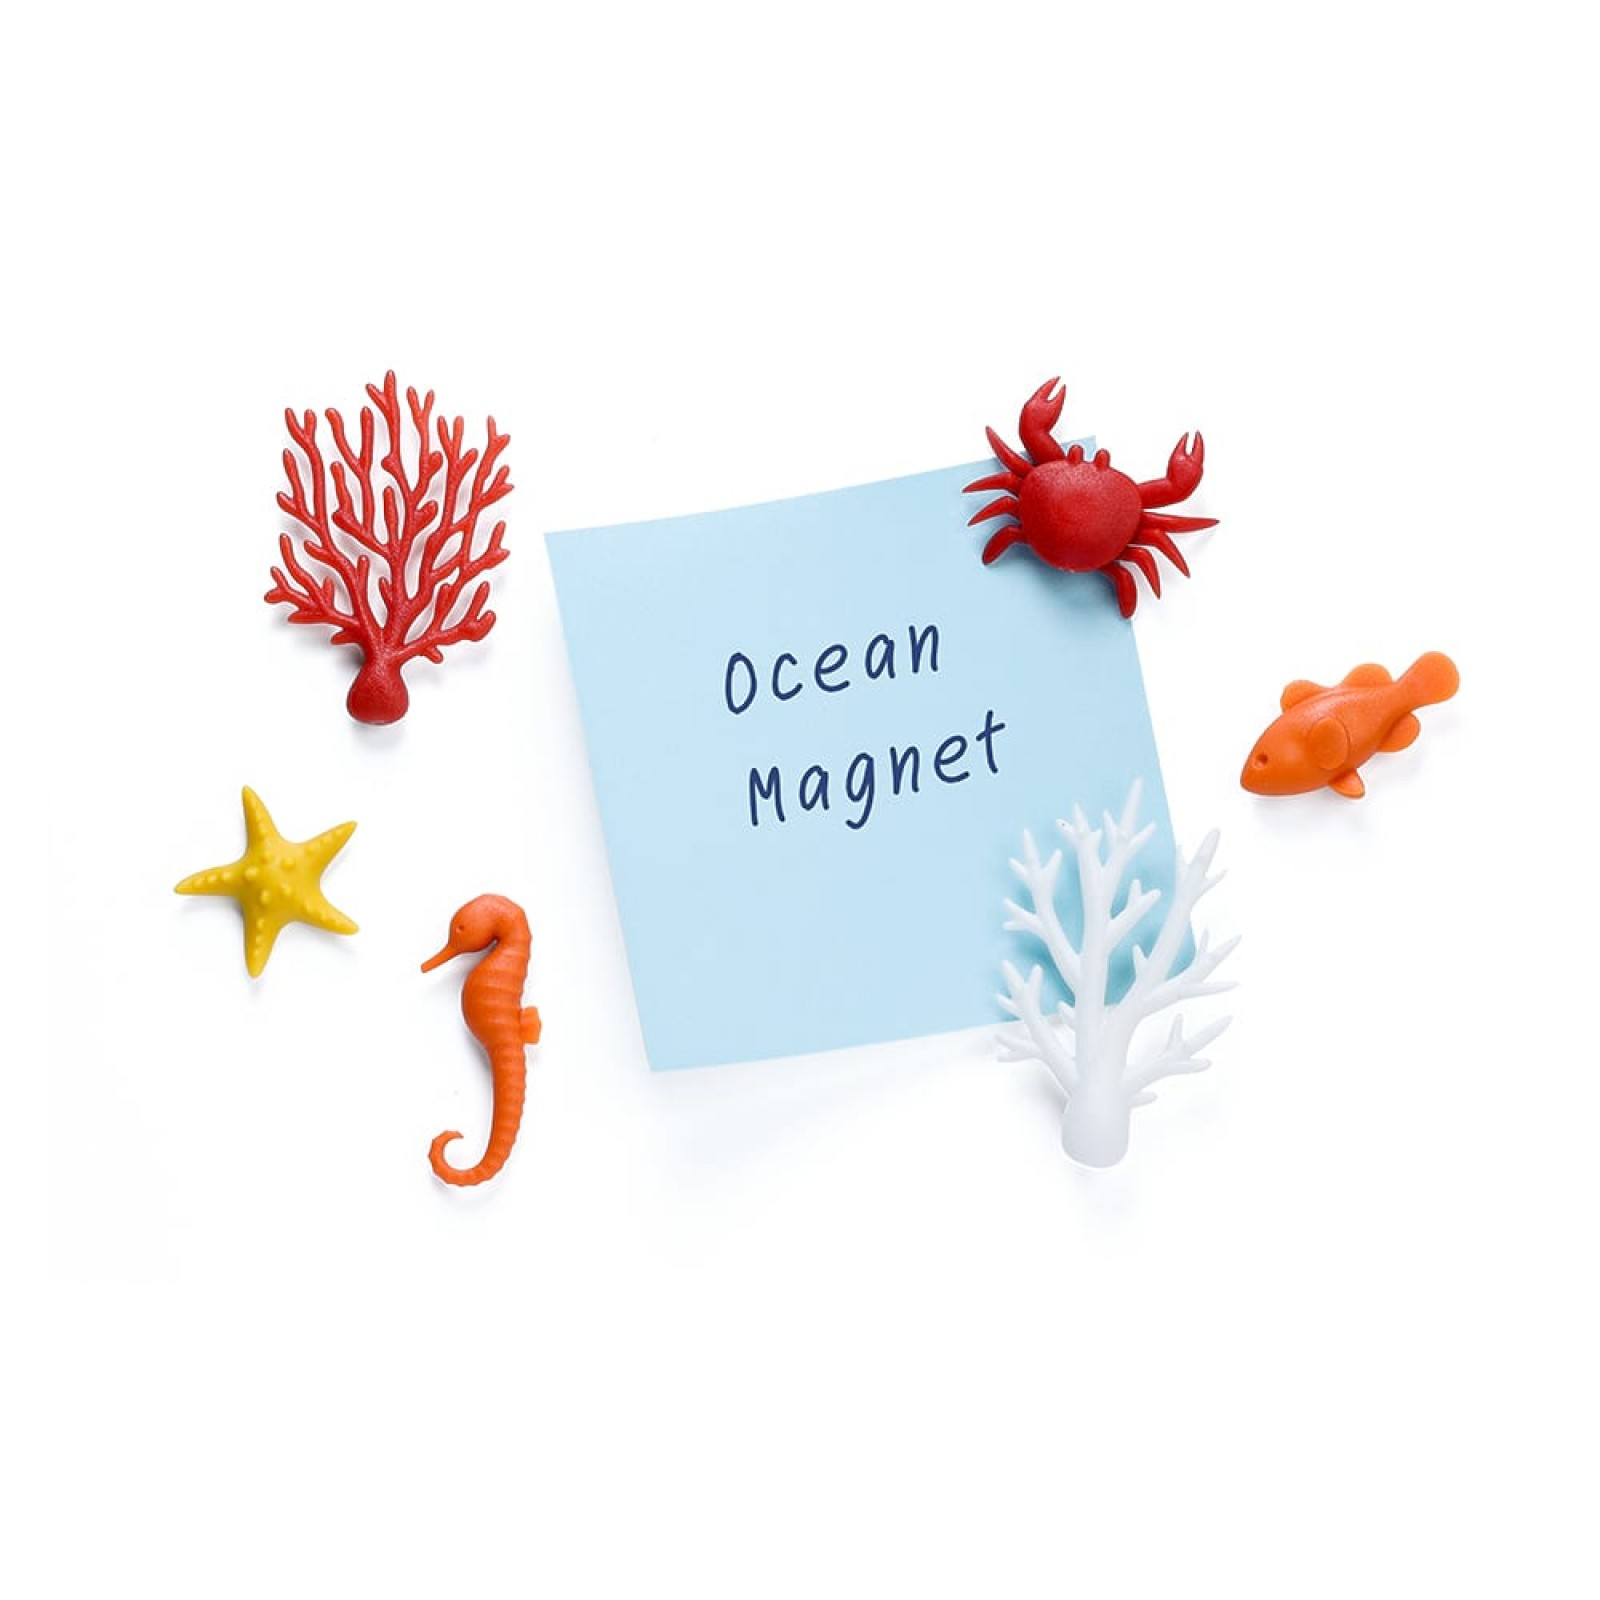 Ocean Ecology Magnets (Set of 6) - Qualy